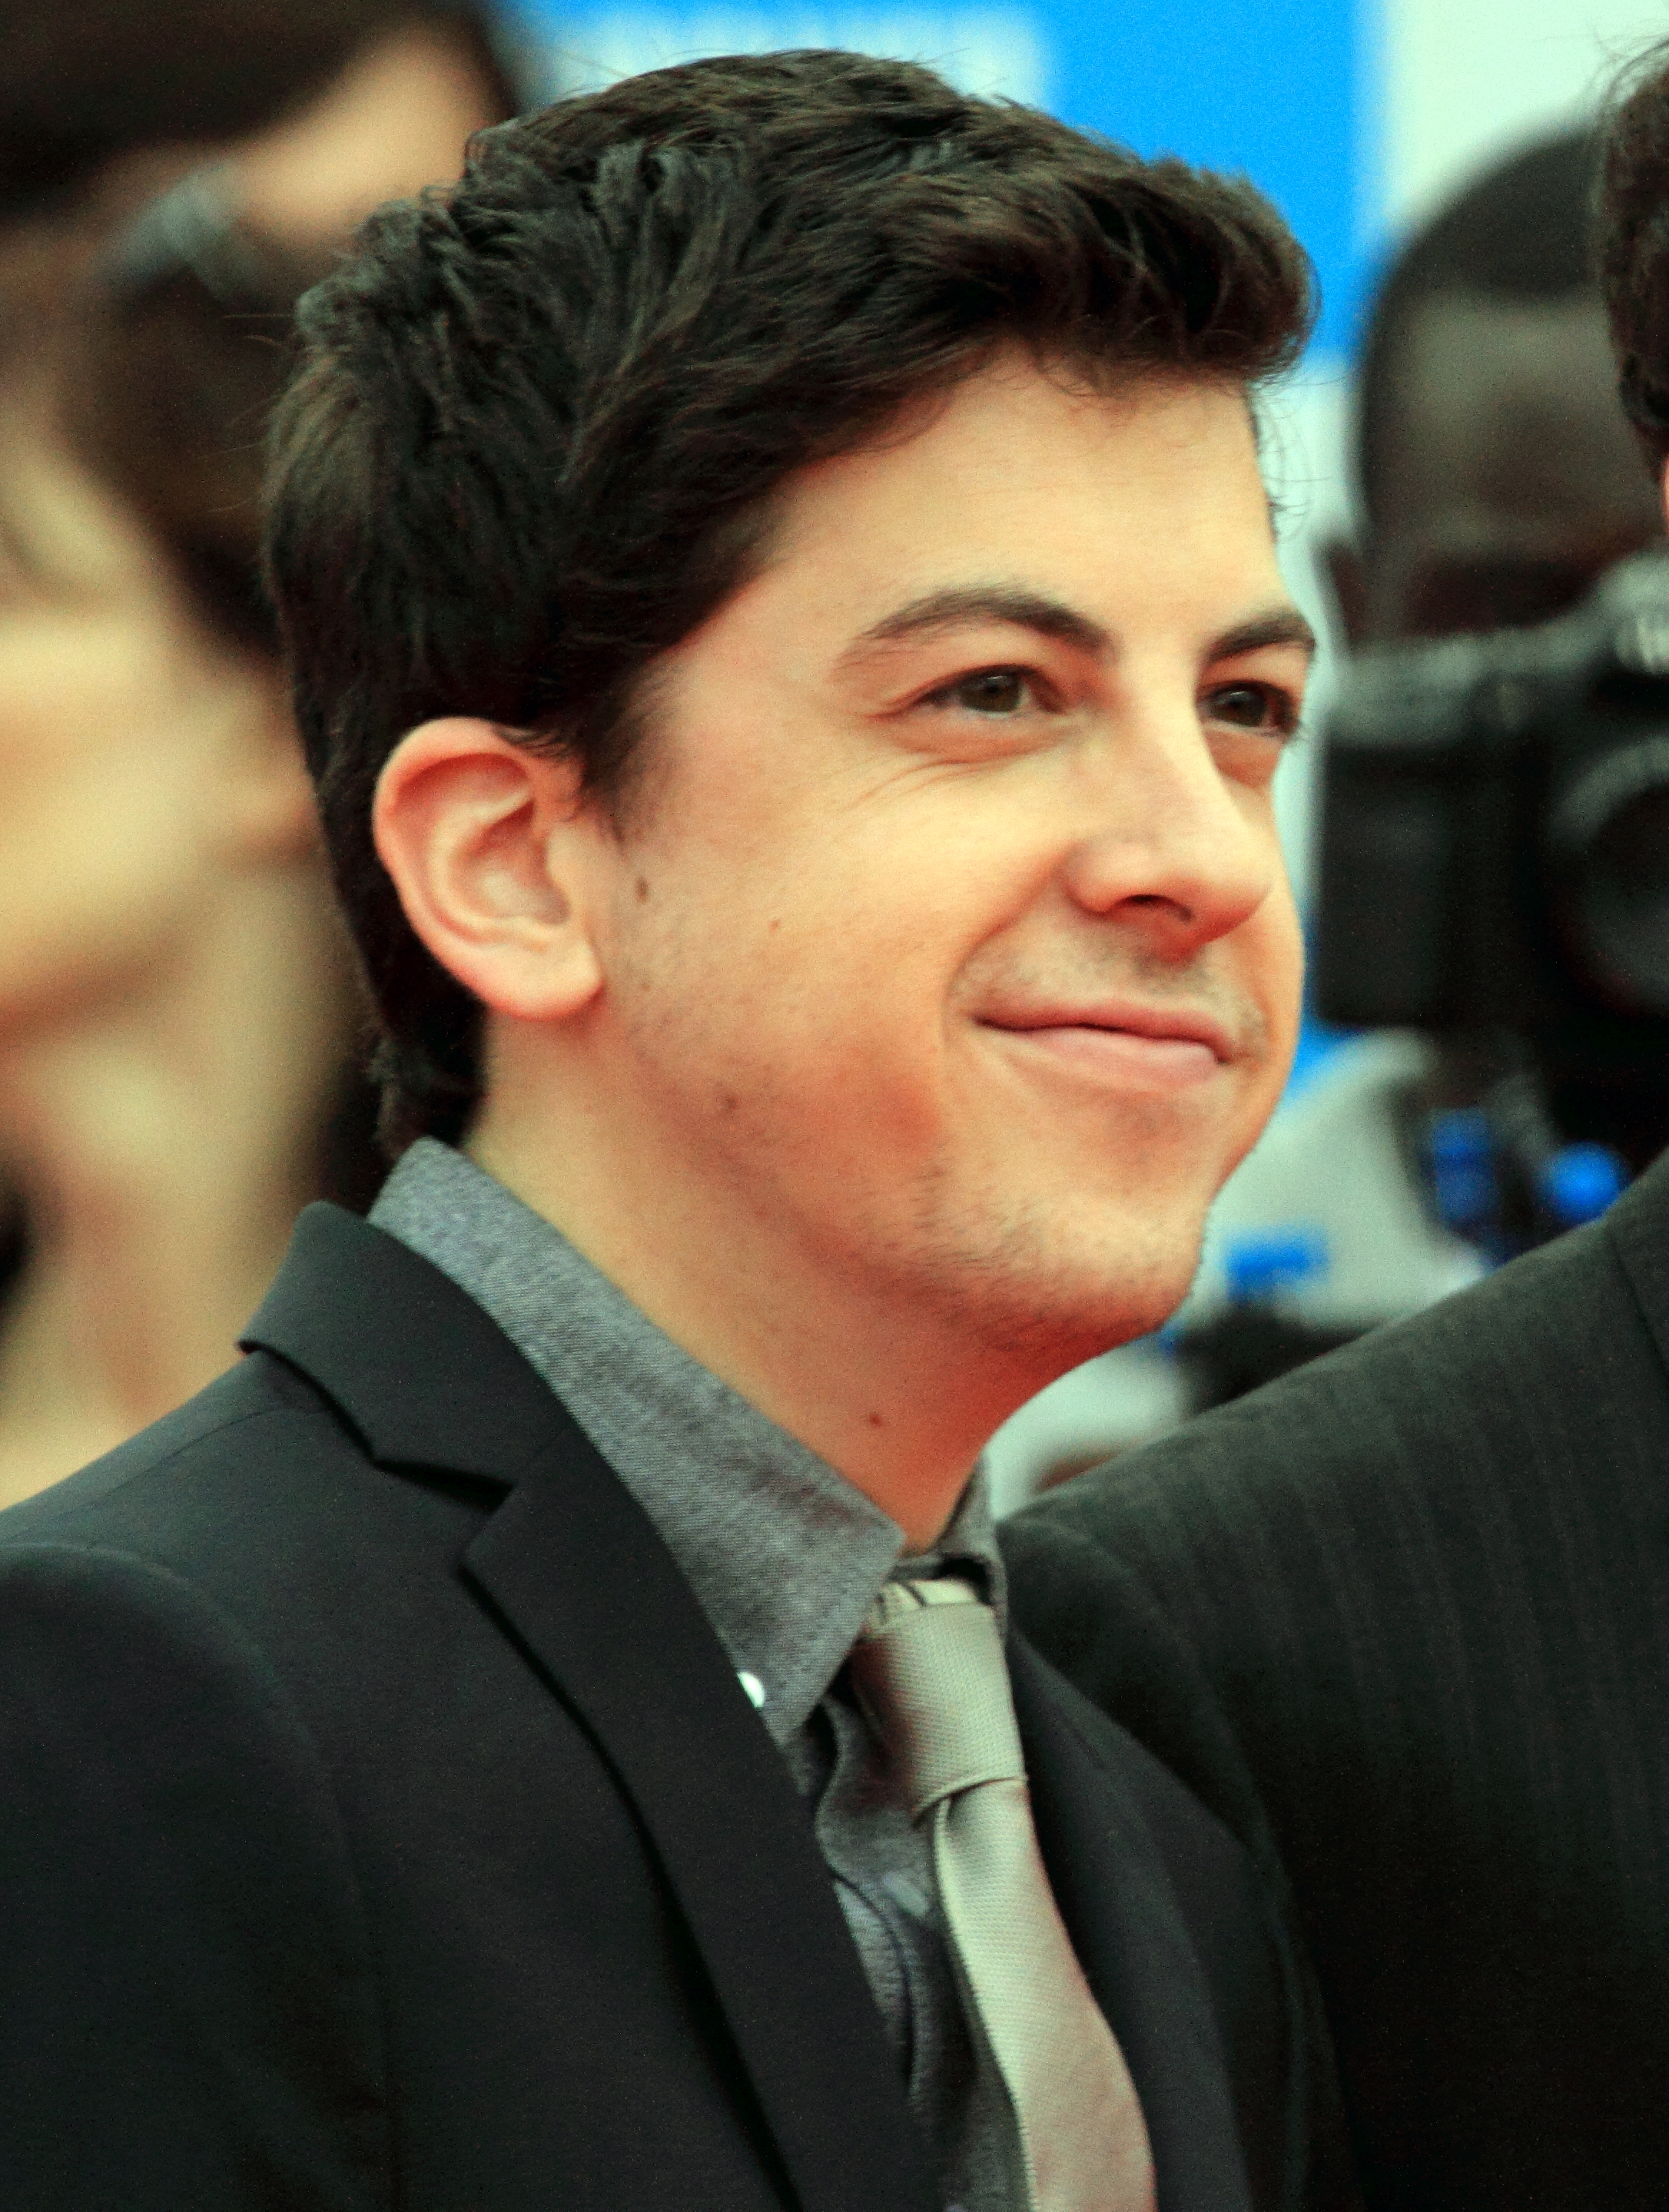 Christopher Mintz-Plasse - Wikipedia, the free encyclopedia